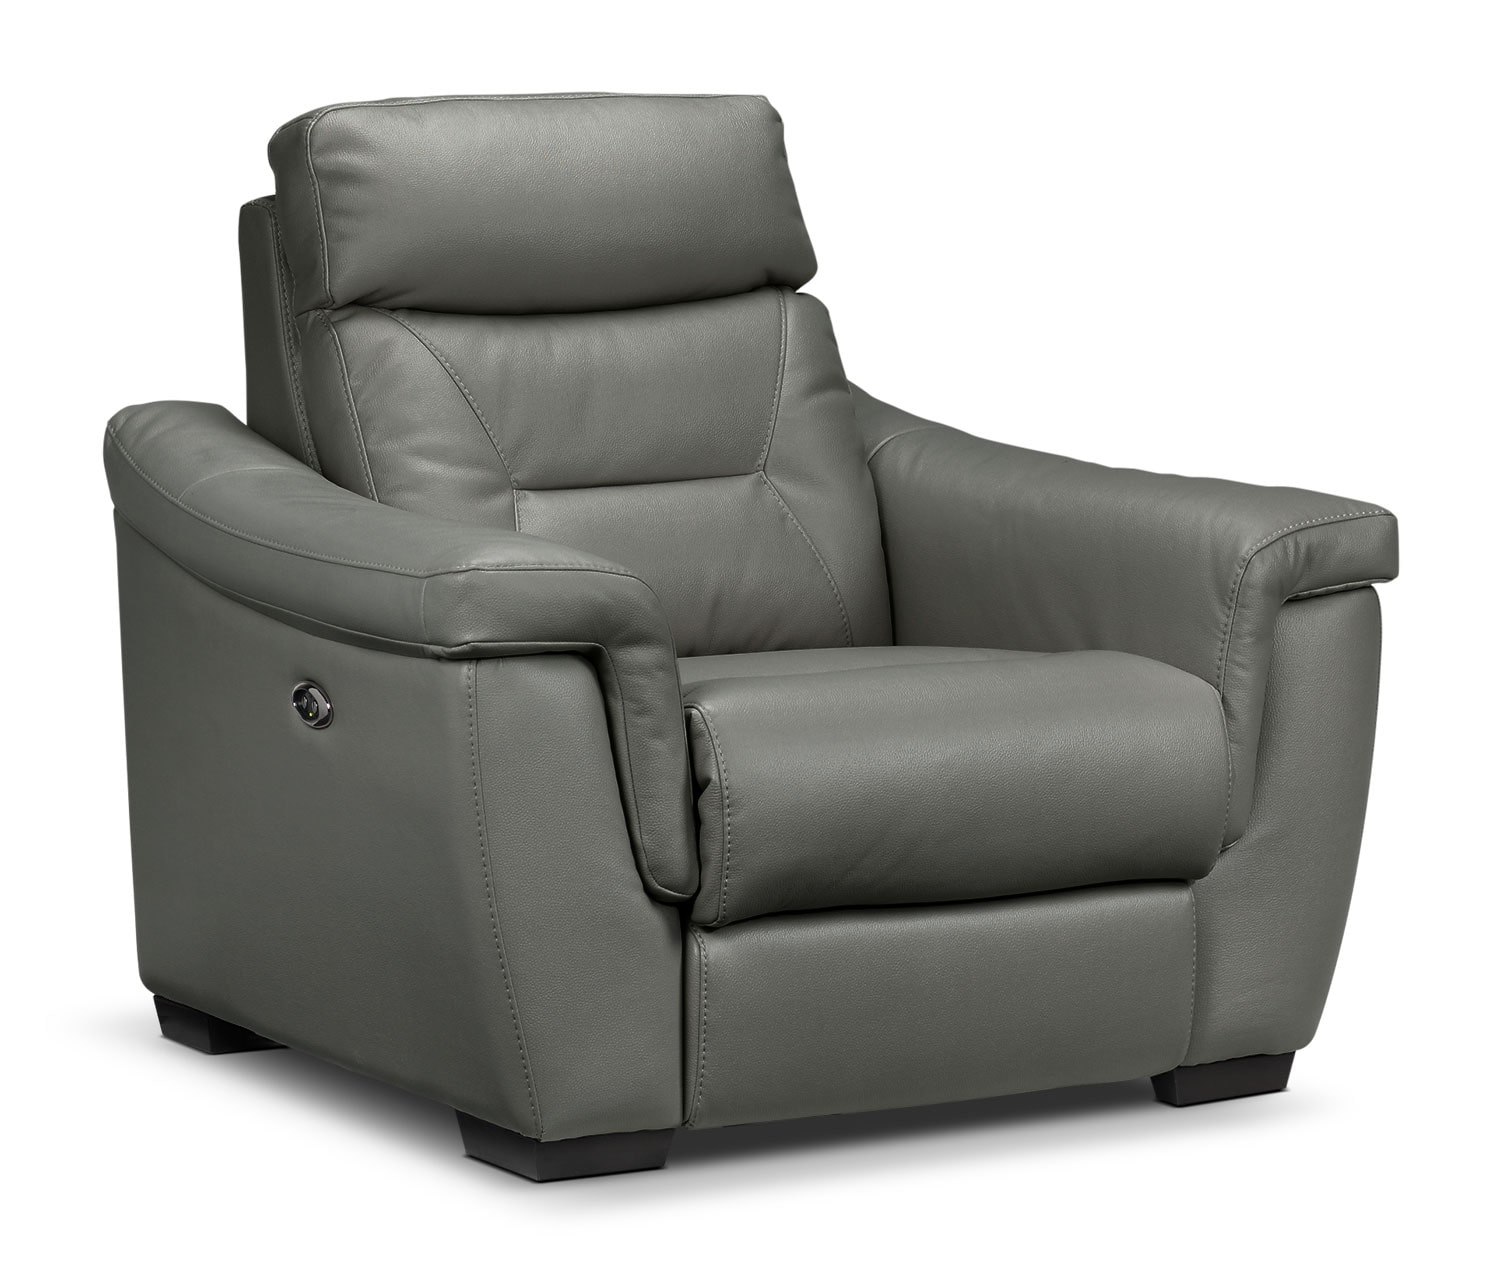 Ralston Power Recliner - Graphite